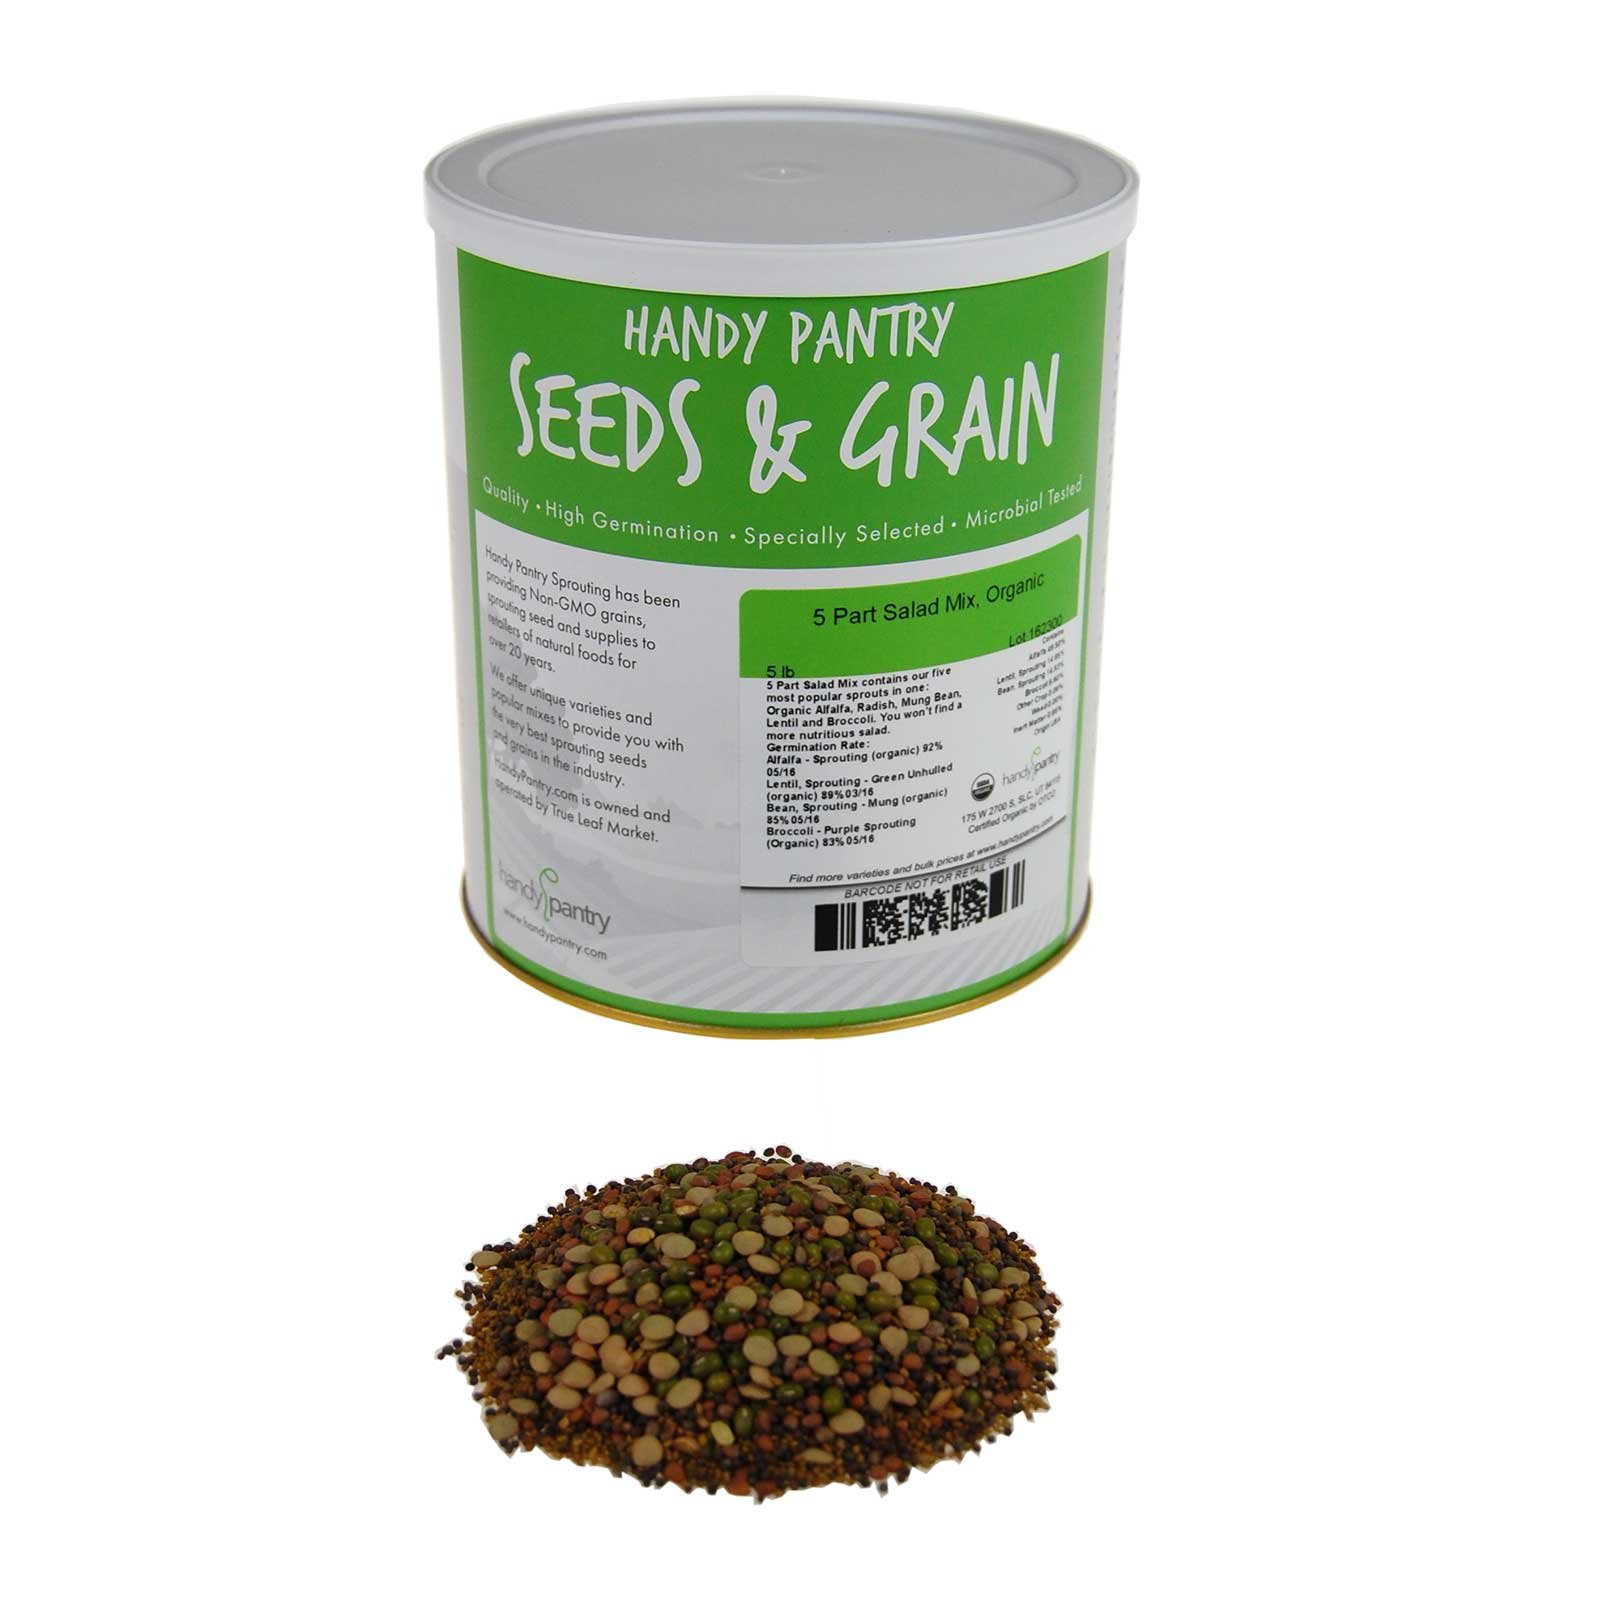 5 Part Salad Sprout Seed Mix -5 Lbs- Organic Sprouting Seeds: Radish, Broccoli, Alfalfa, Green Lentil & Mung Bean - For Sprouts